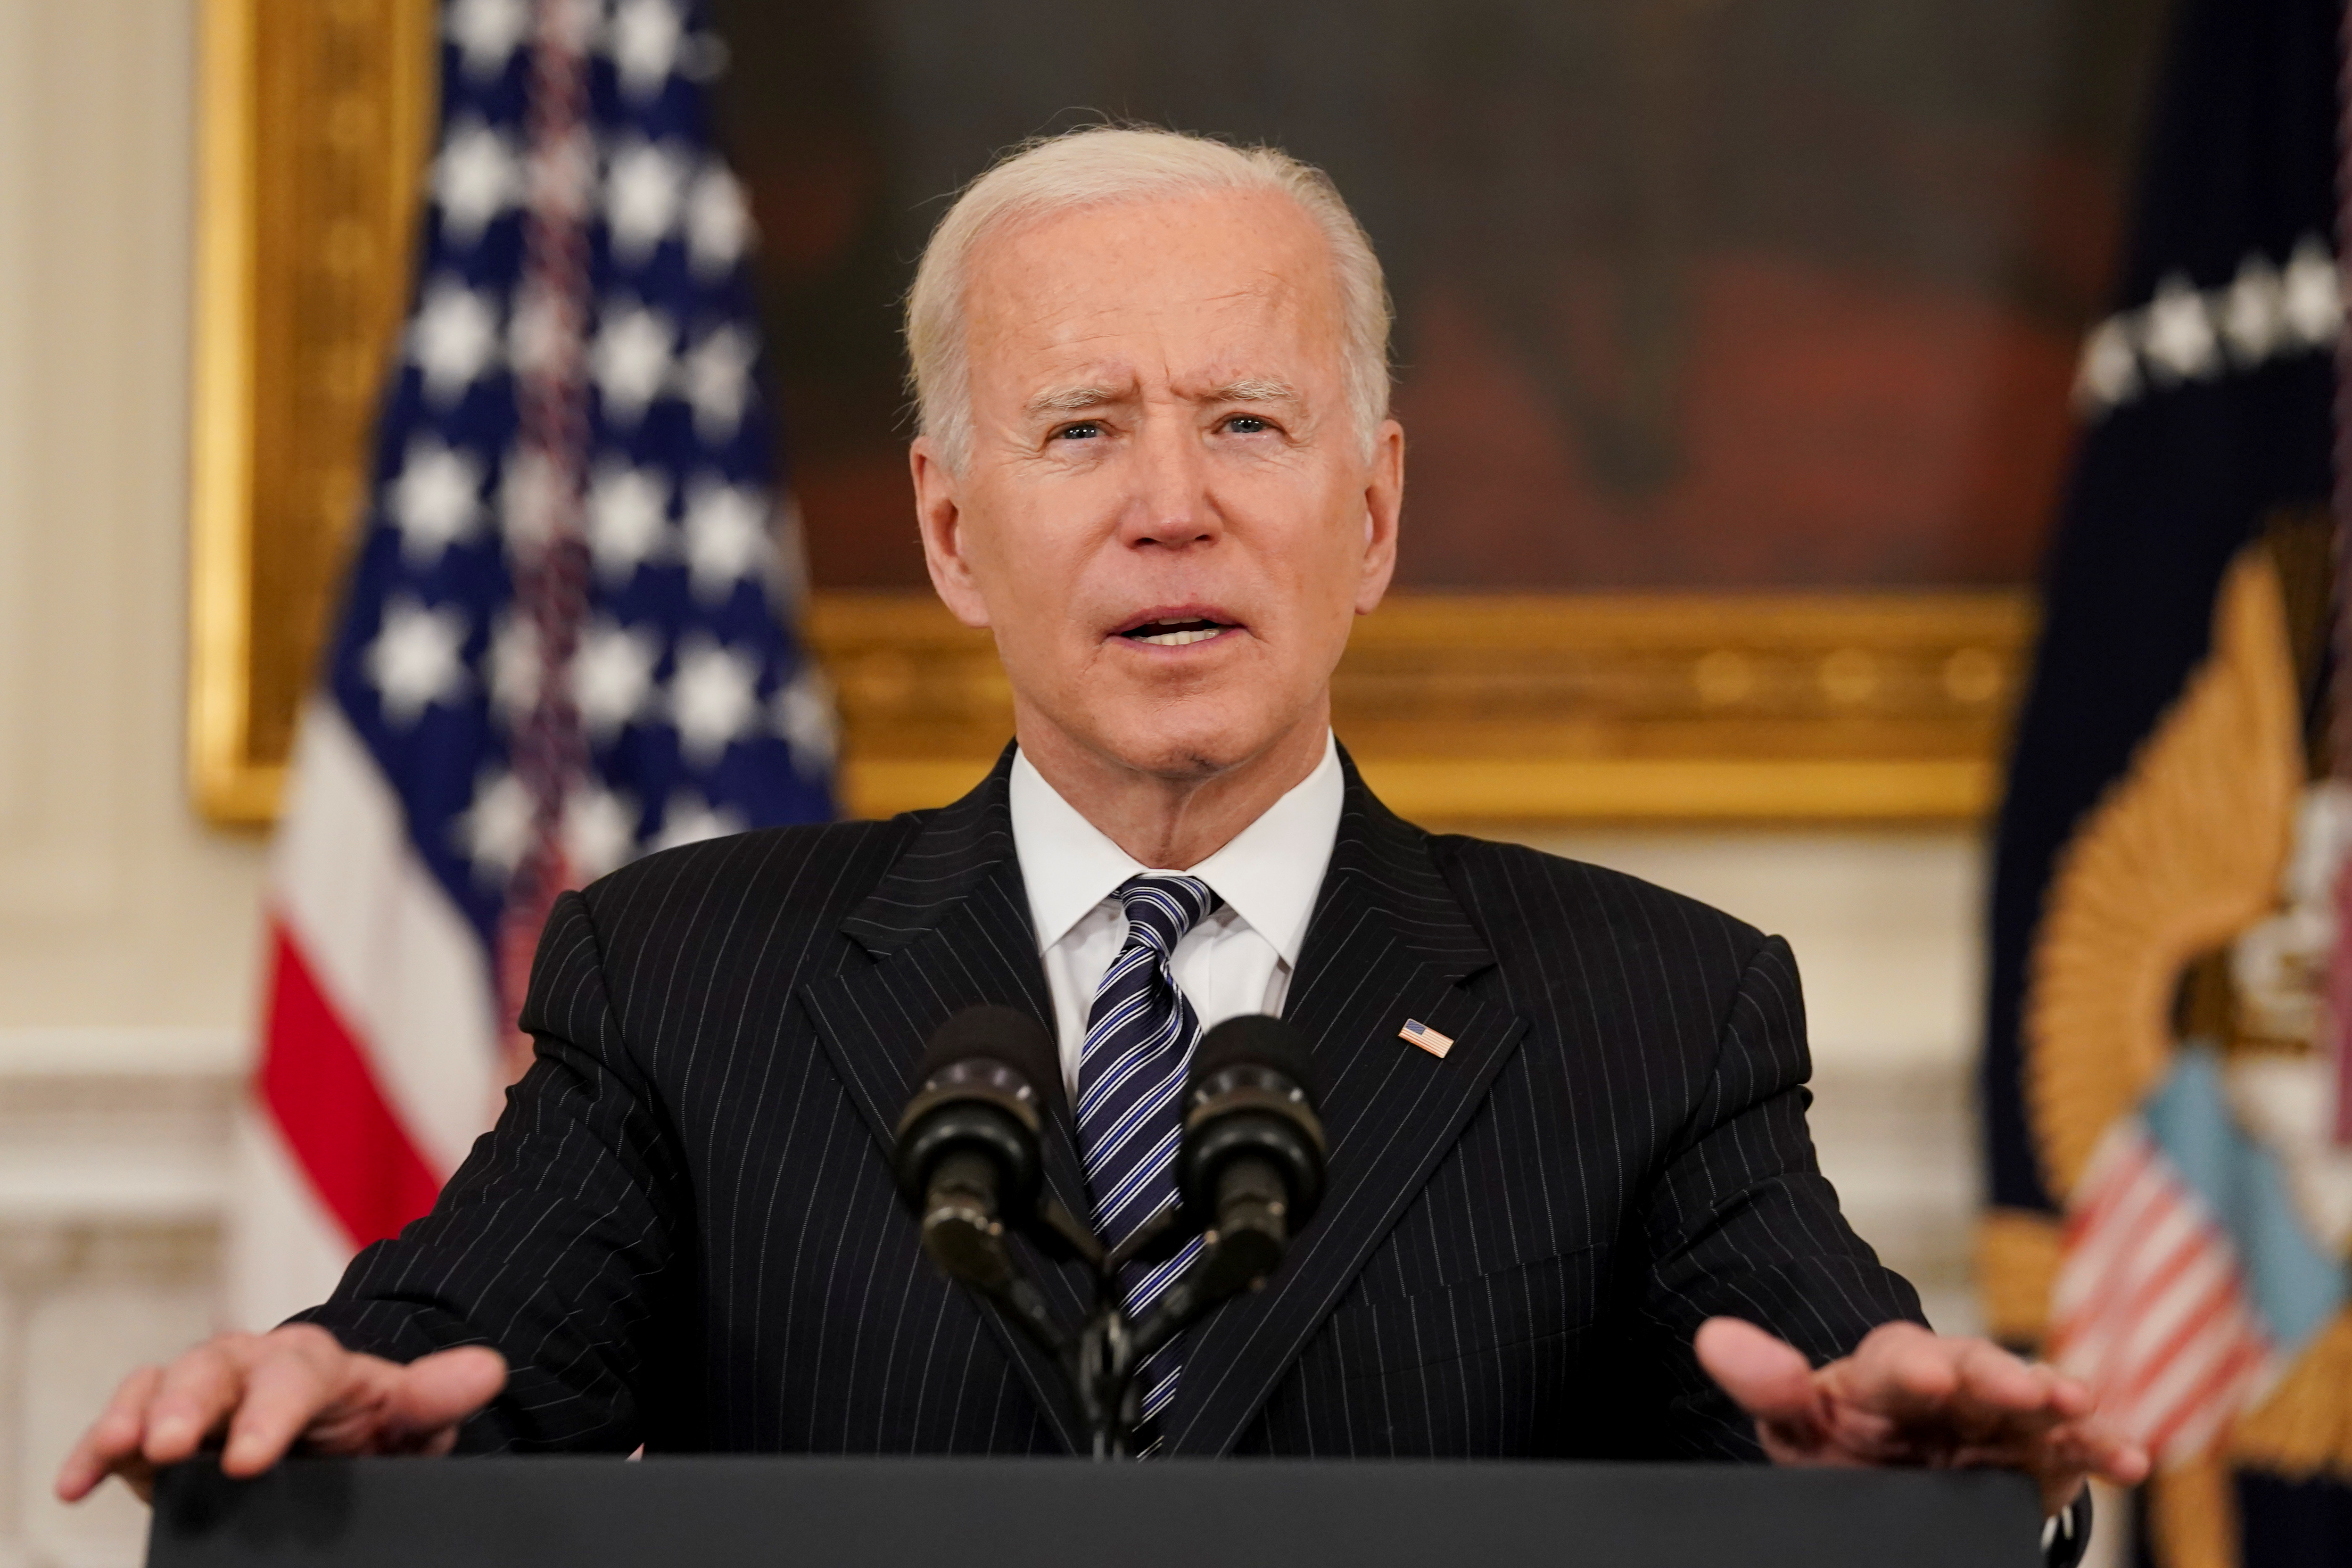 U.S. President Joe Biden delivers remarks on the state of the coronavirus disease (COVID-19) vaccinations from the State Dining Room at the White House in Washington, D.C., U.S., April 6, 2021. REUTERS/Kevin Lamarque